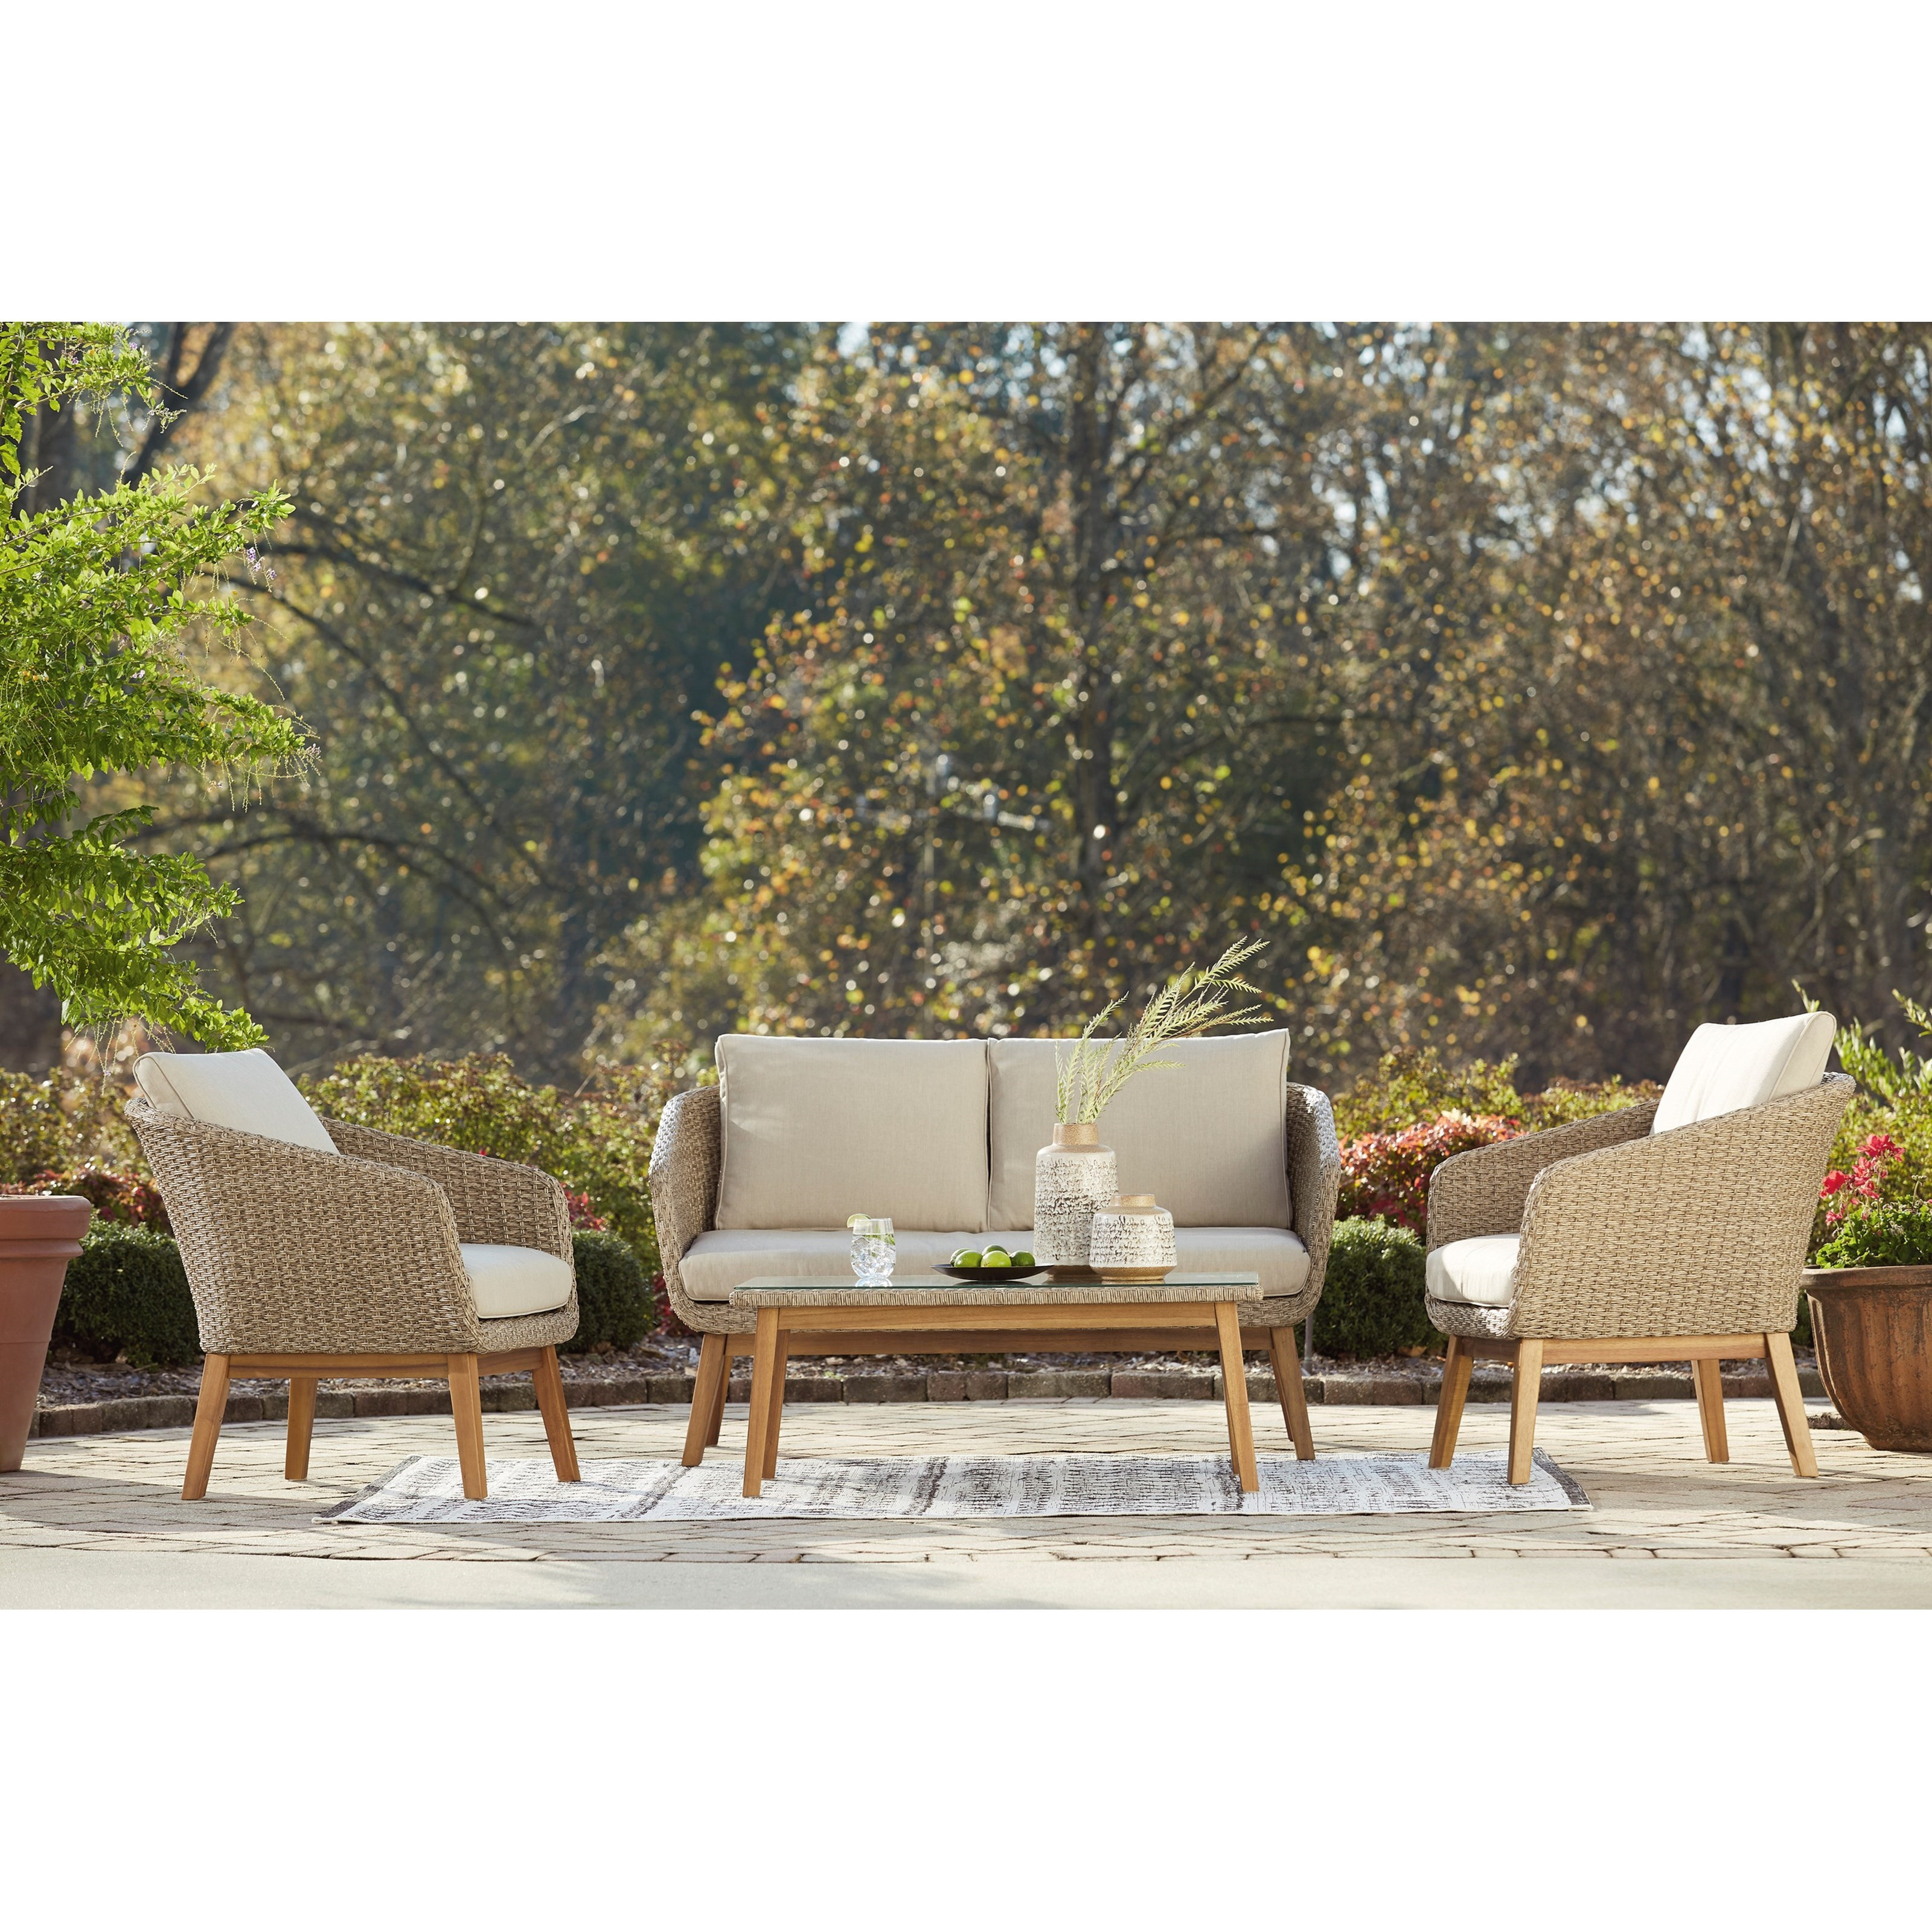 Crystal Cave Loveseat w/ Table & 2 Lounge Chairs by Signature at Walker's Furniture